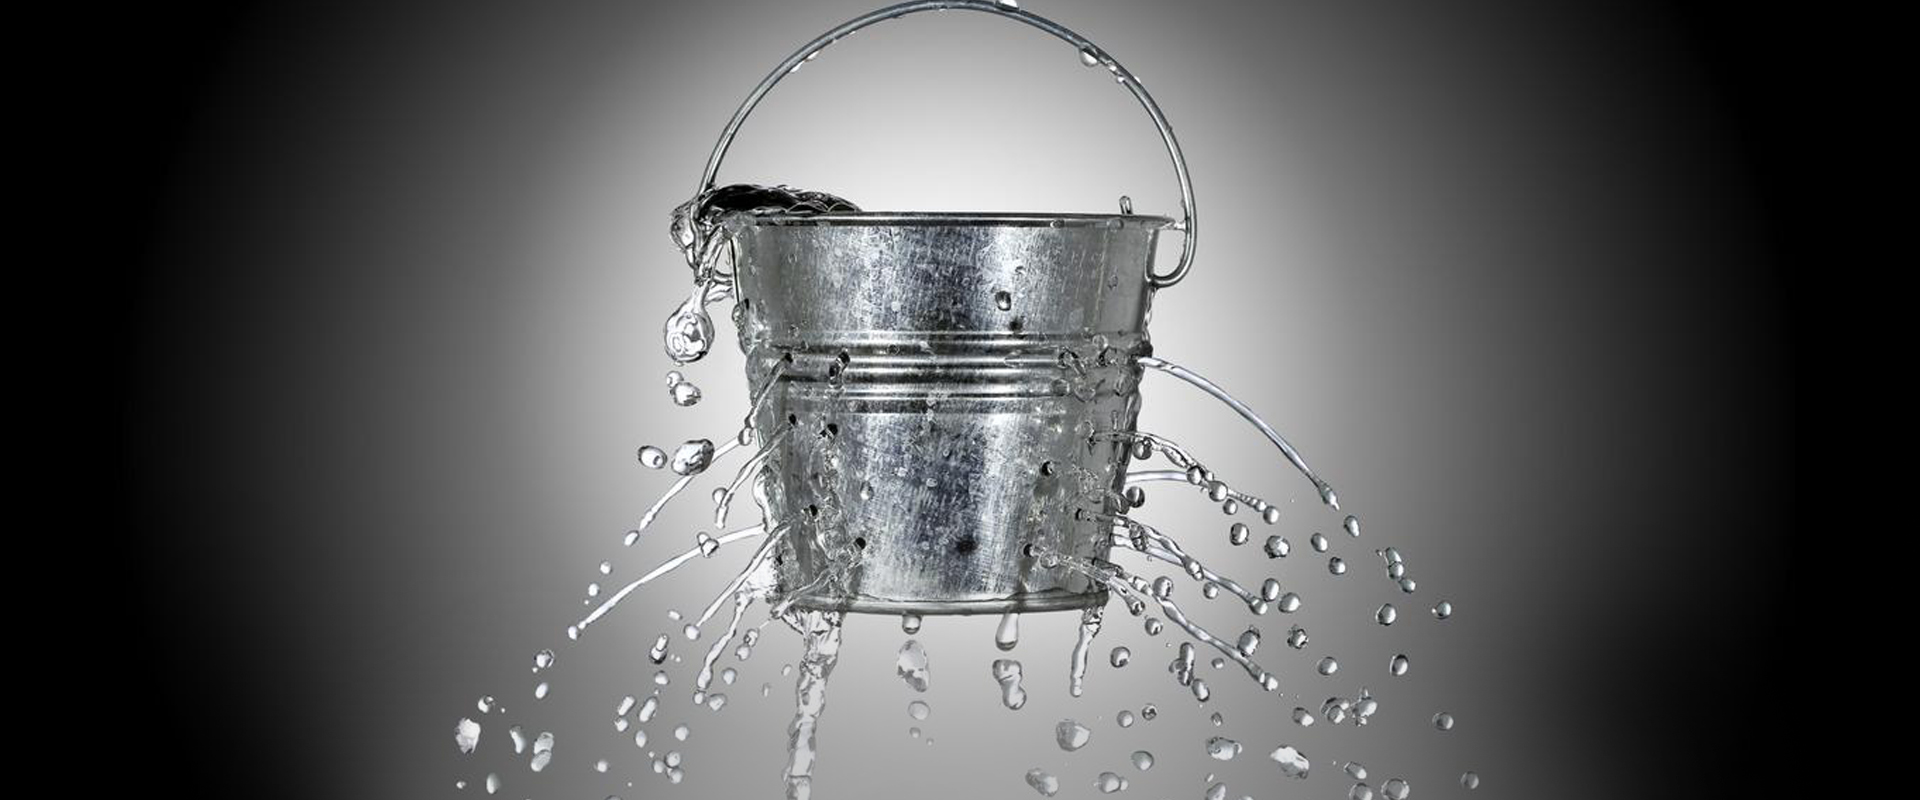 A bucket which is leaking due to many holes punctured in its metal.